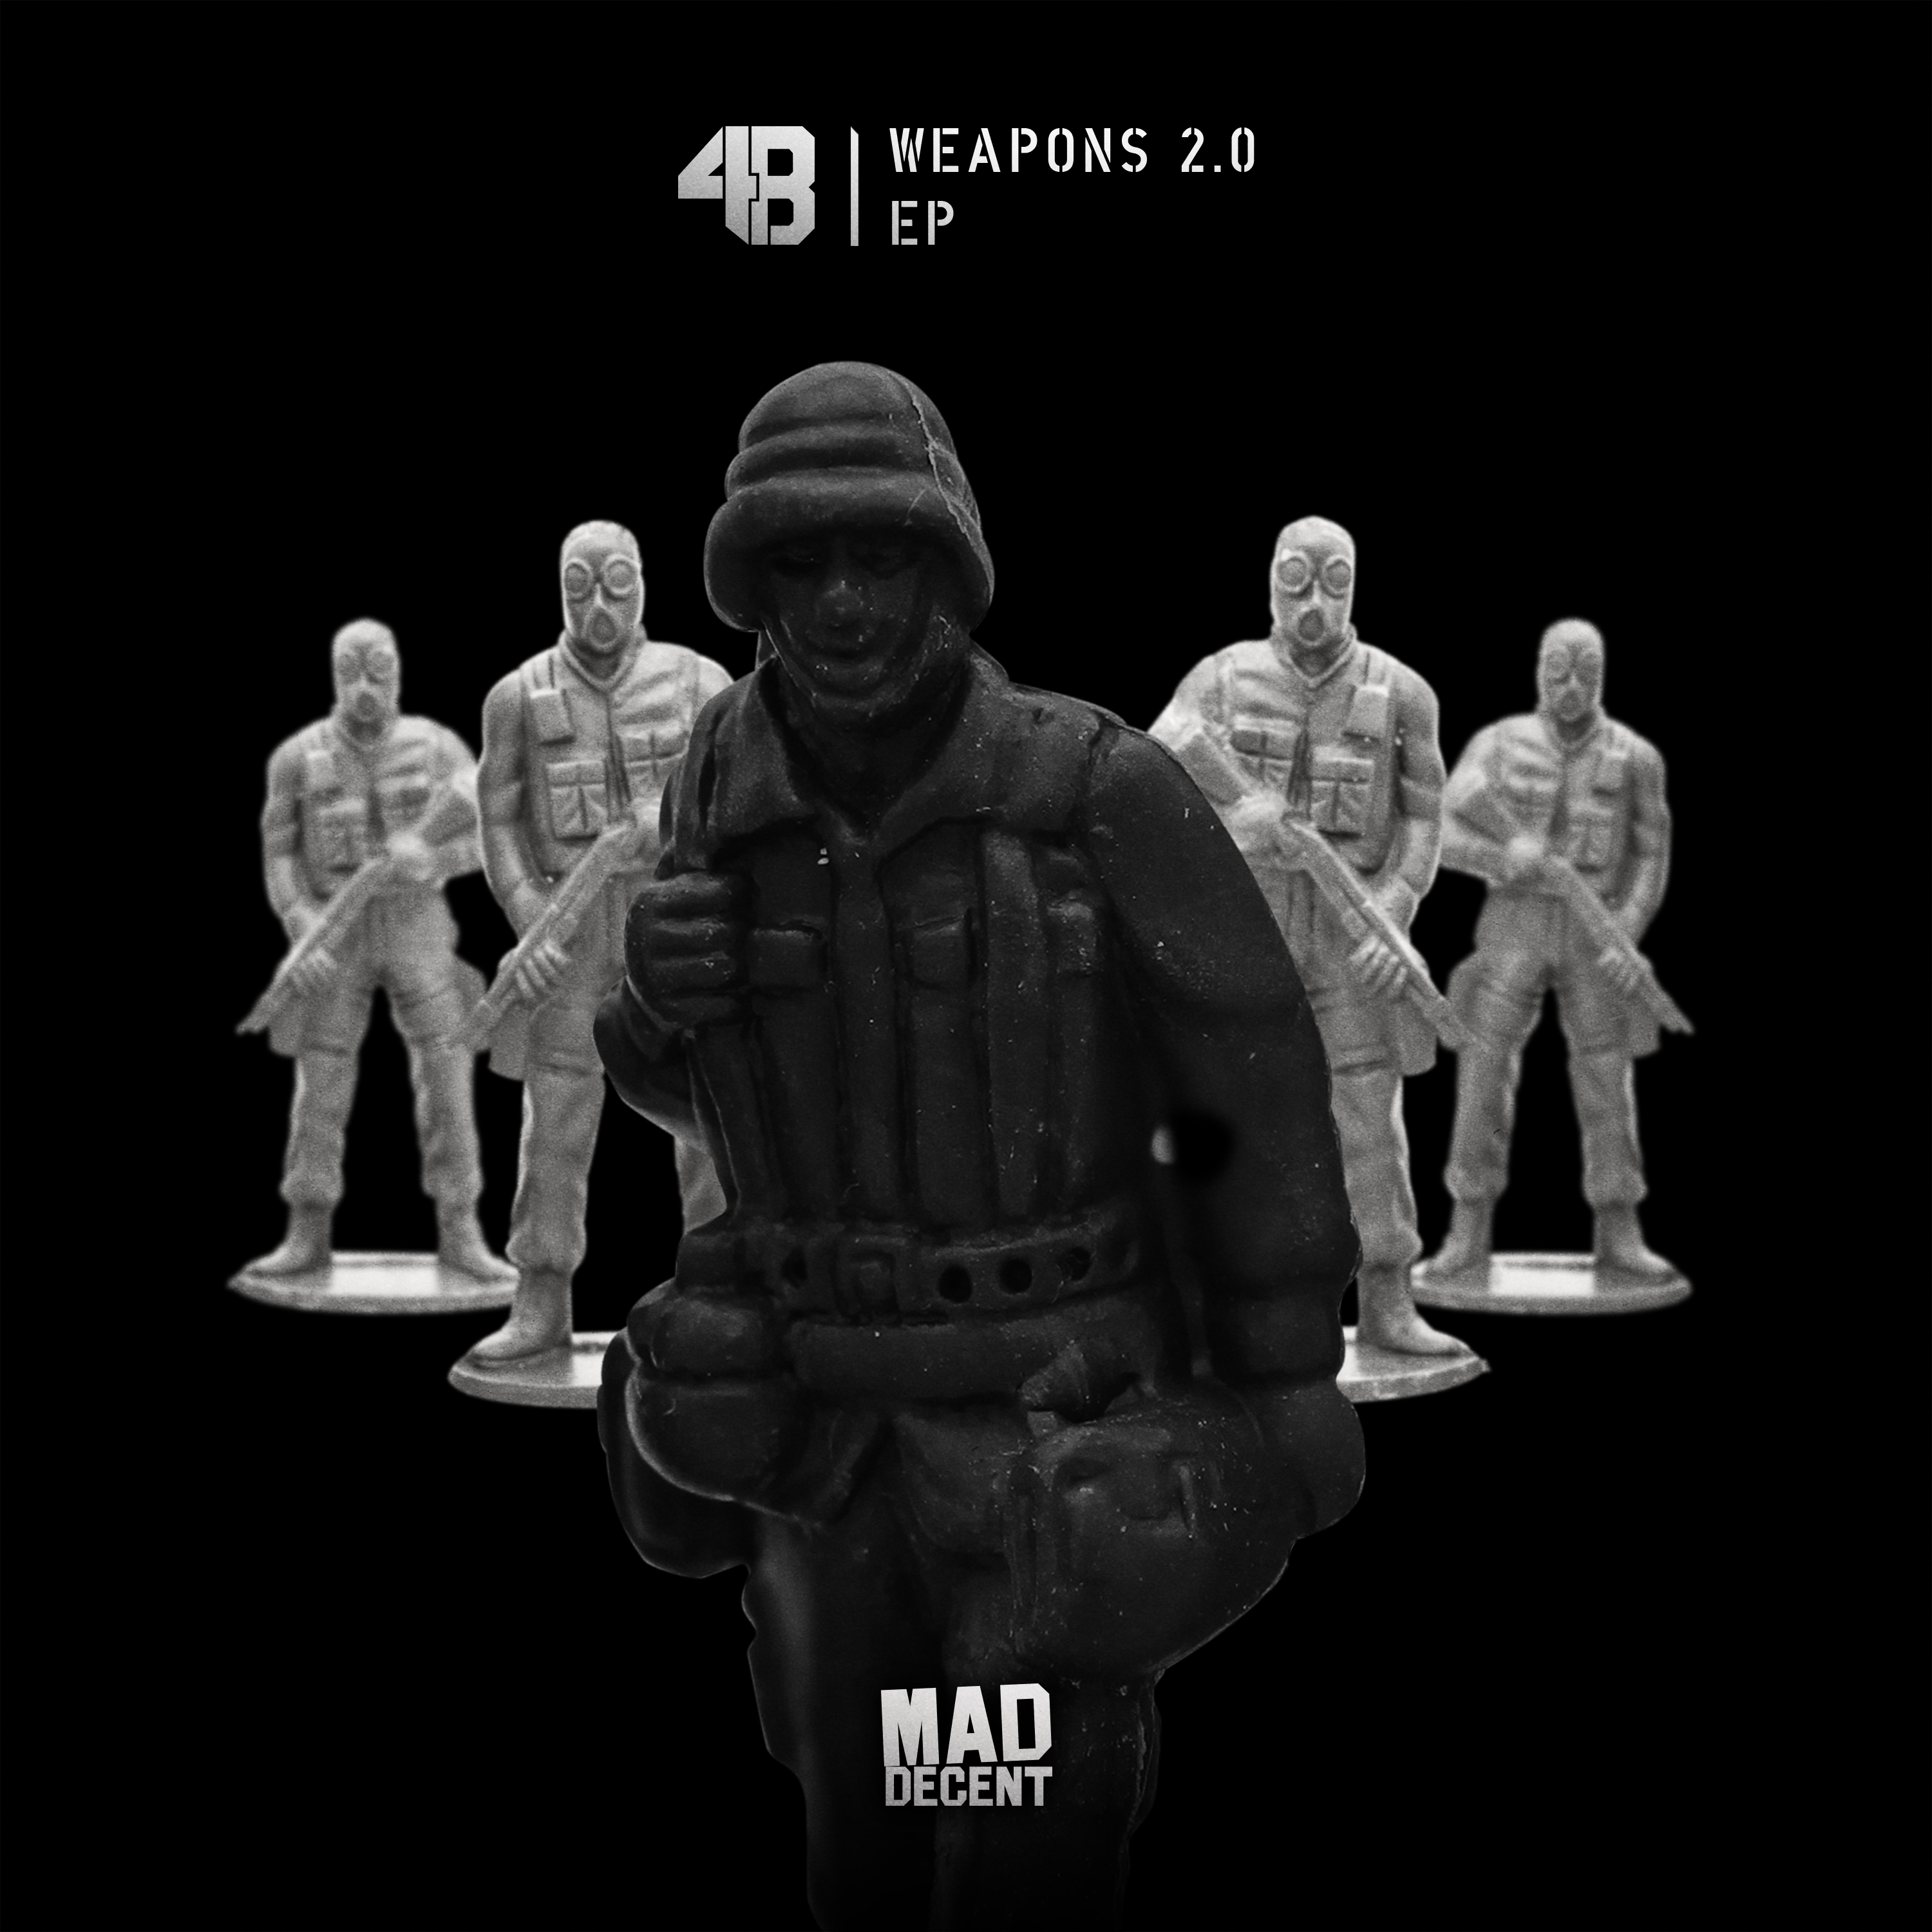 4B releases new 'Weapons 2.0' EP on Mad Decent4B WeaponsEP Cover